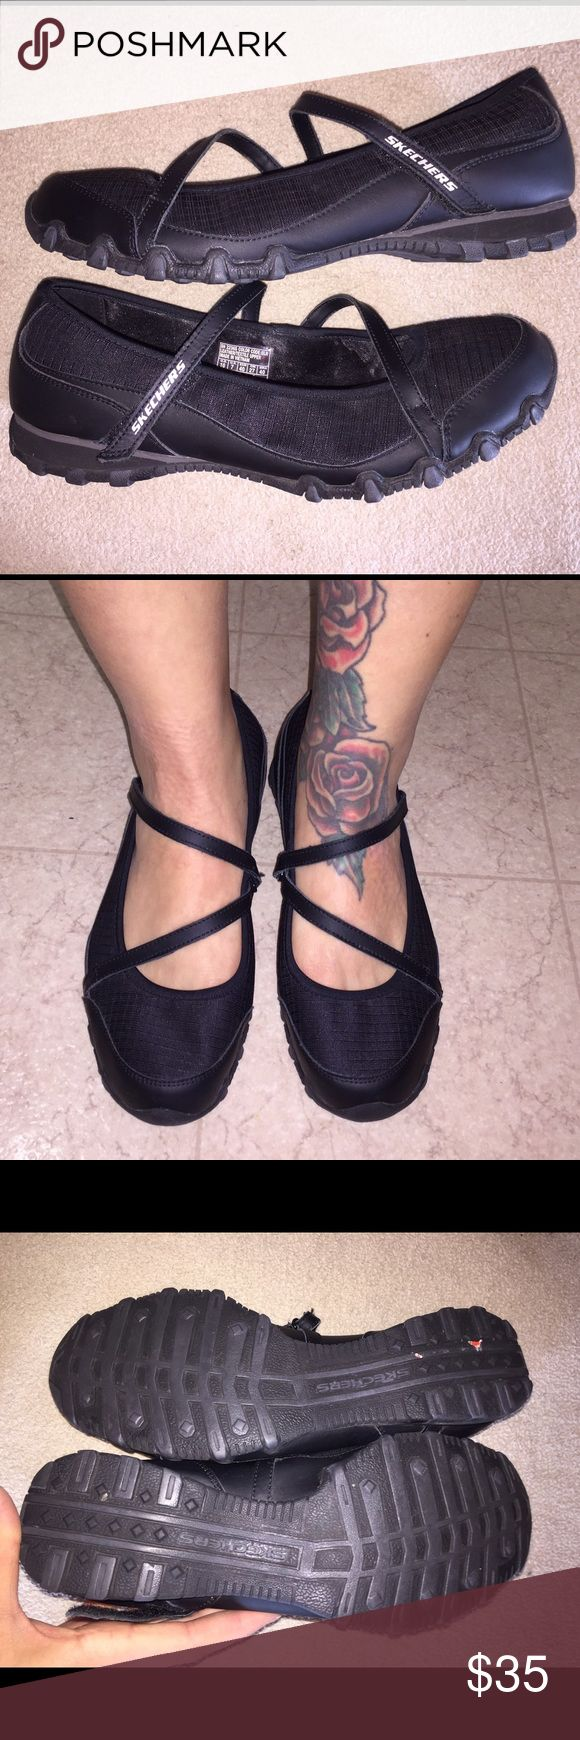 BRAND NEW Mary Jane style flats w/Velcro straps New, excellent condition black Mary Jane style flats with velcro straps, women's size 10 Skechers Shoes Flats & Loafers